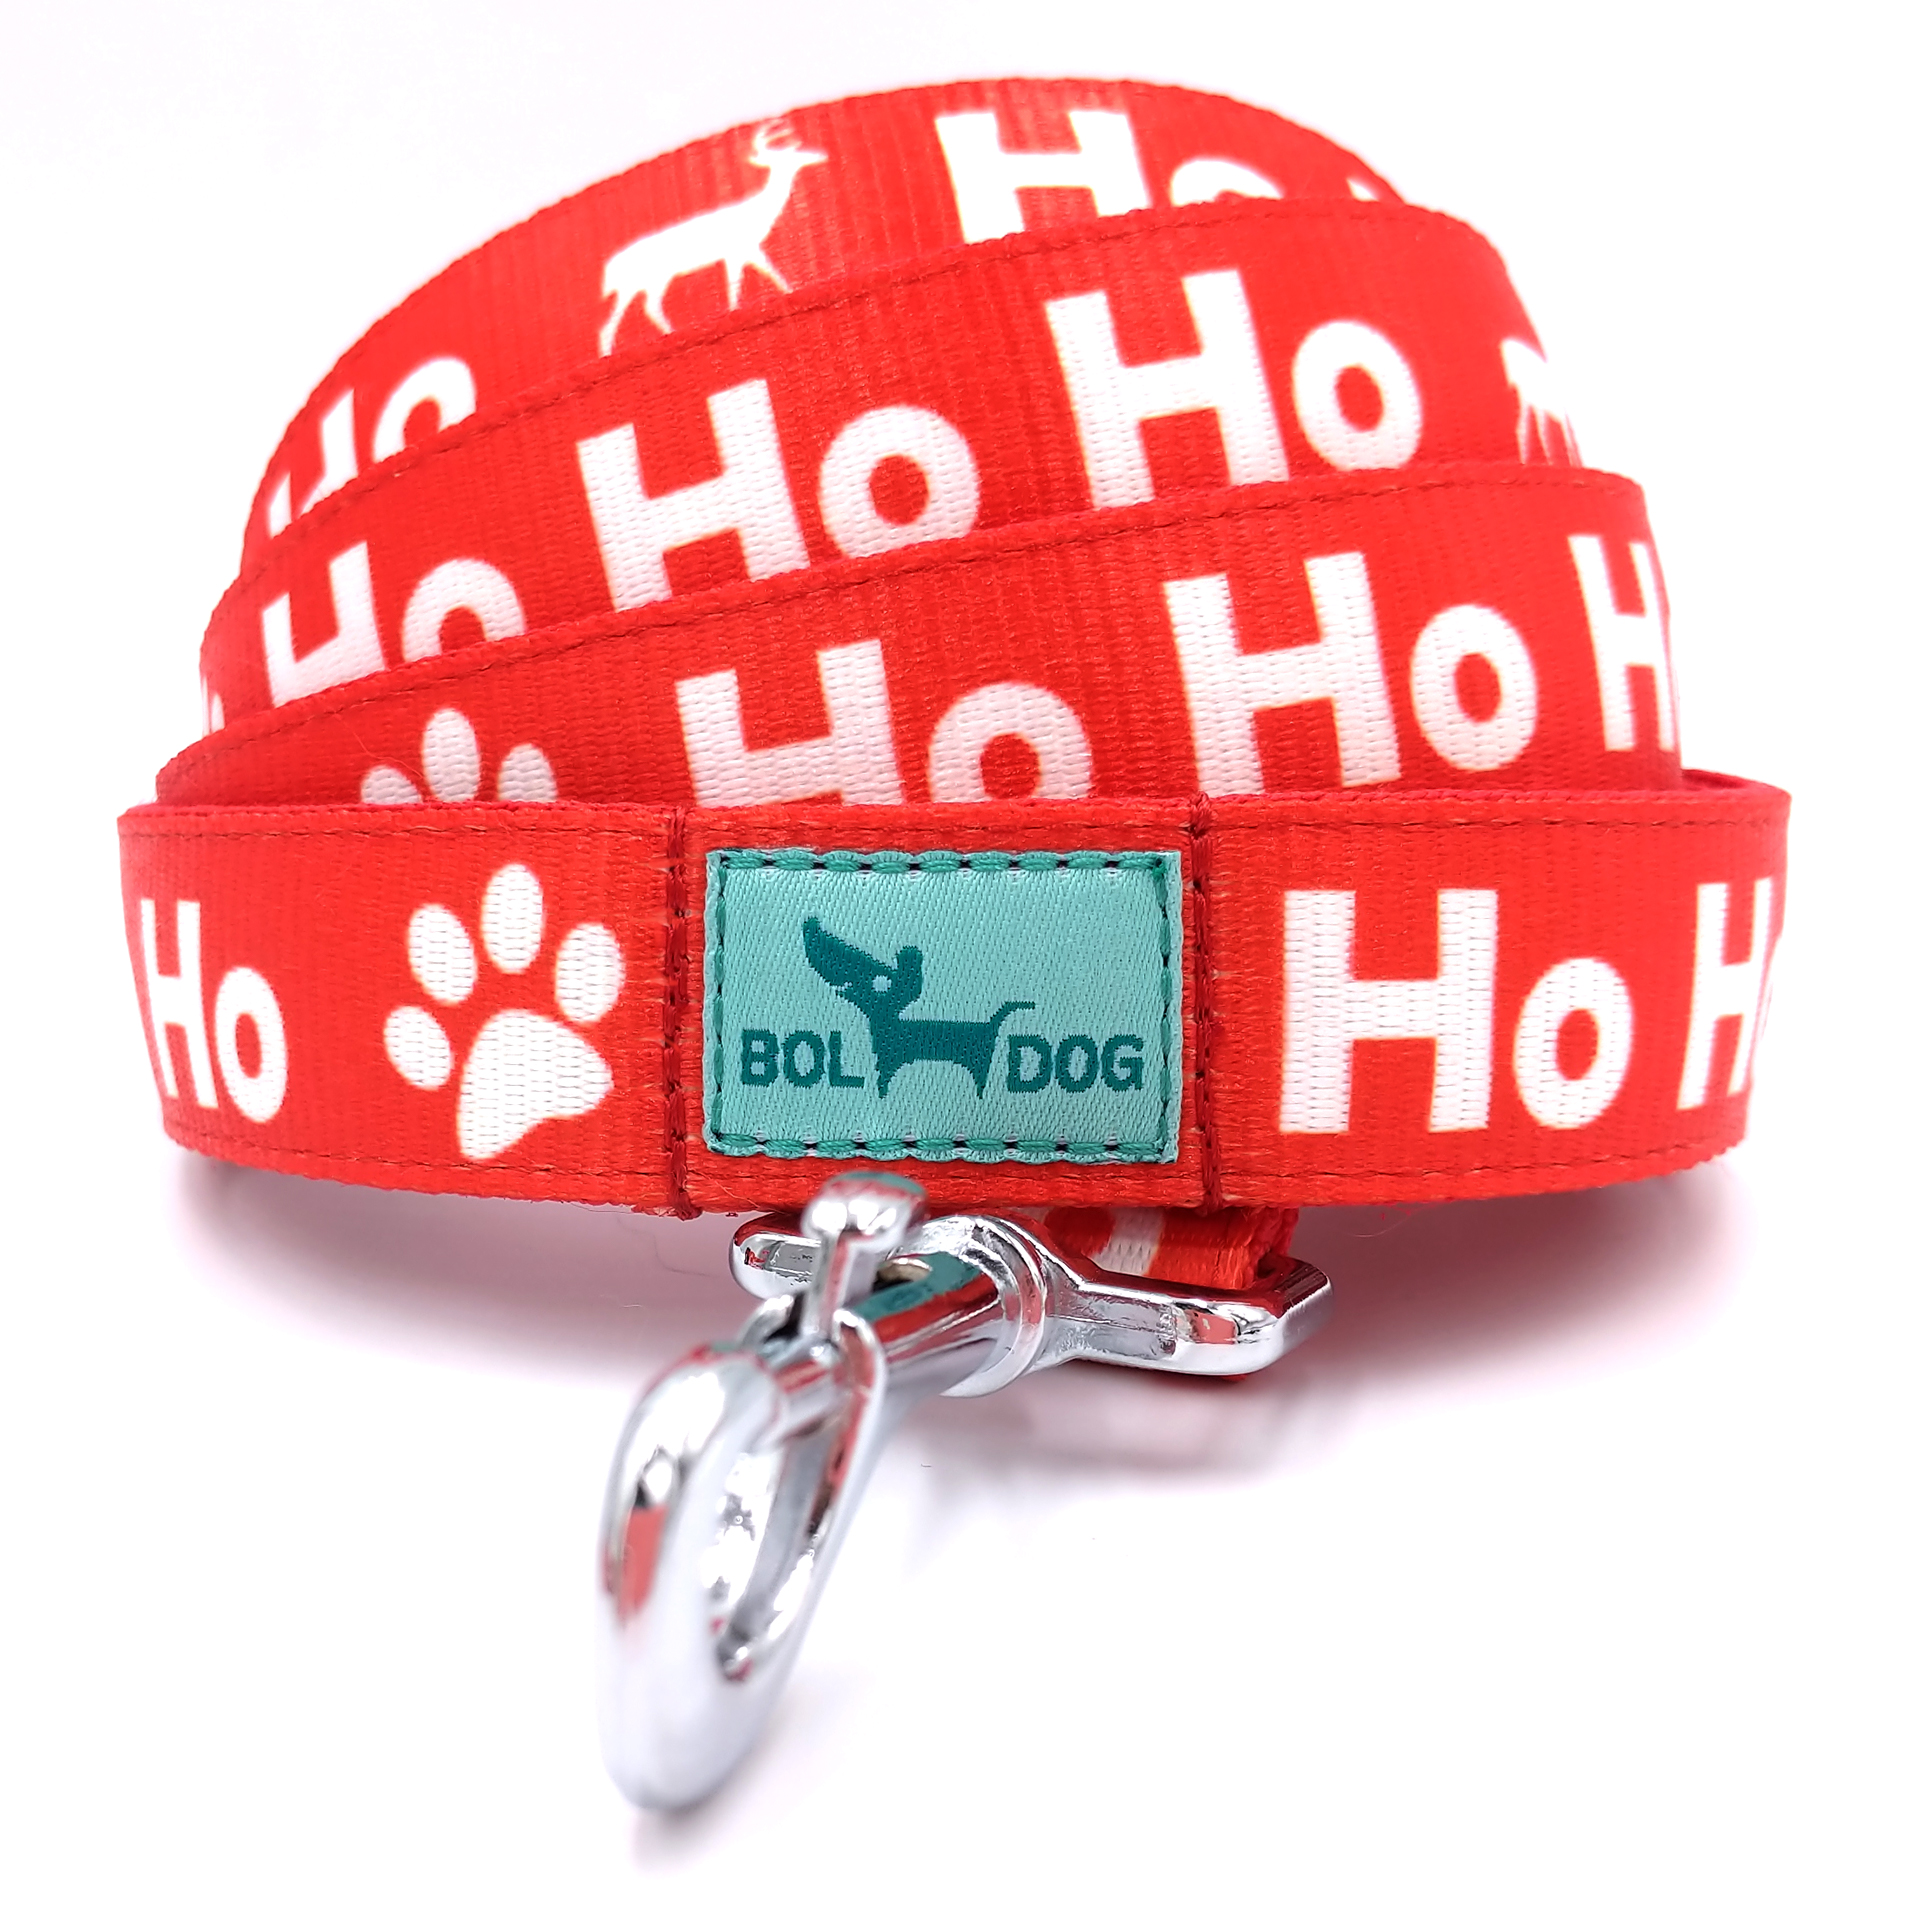 Hohoho dog leash